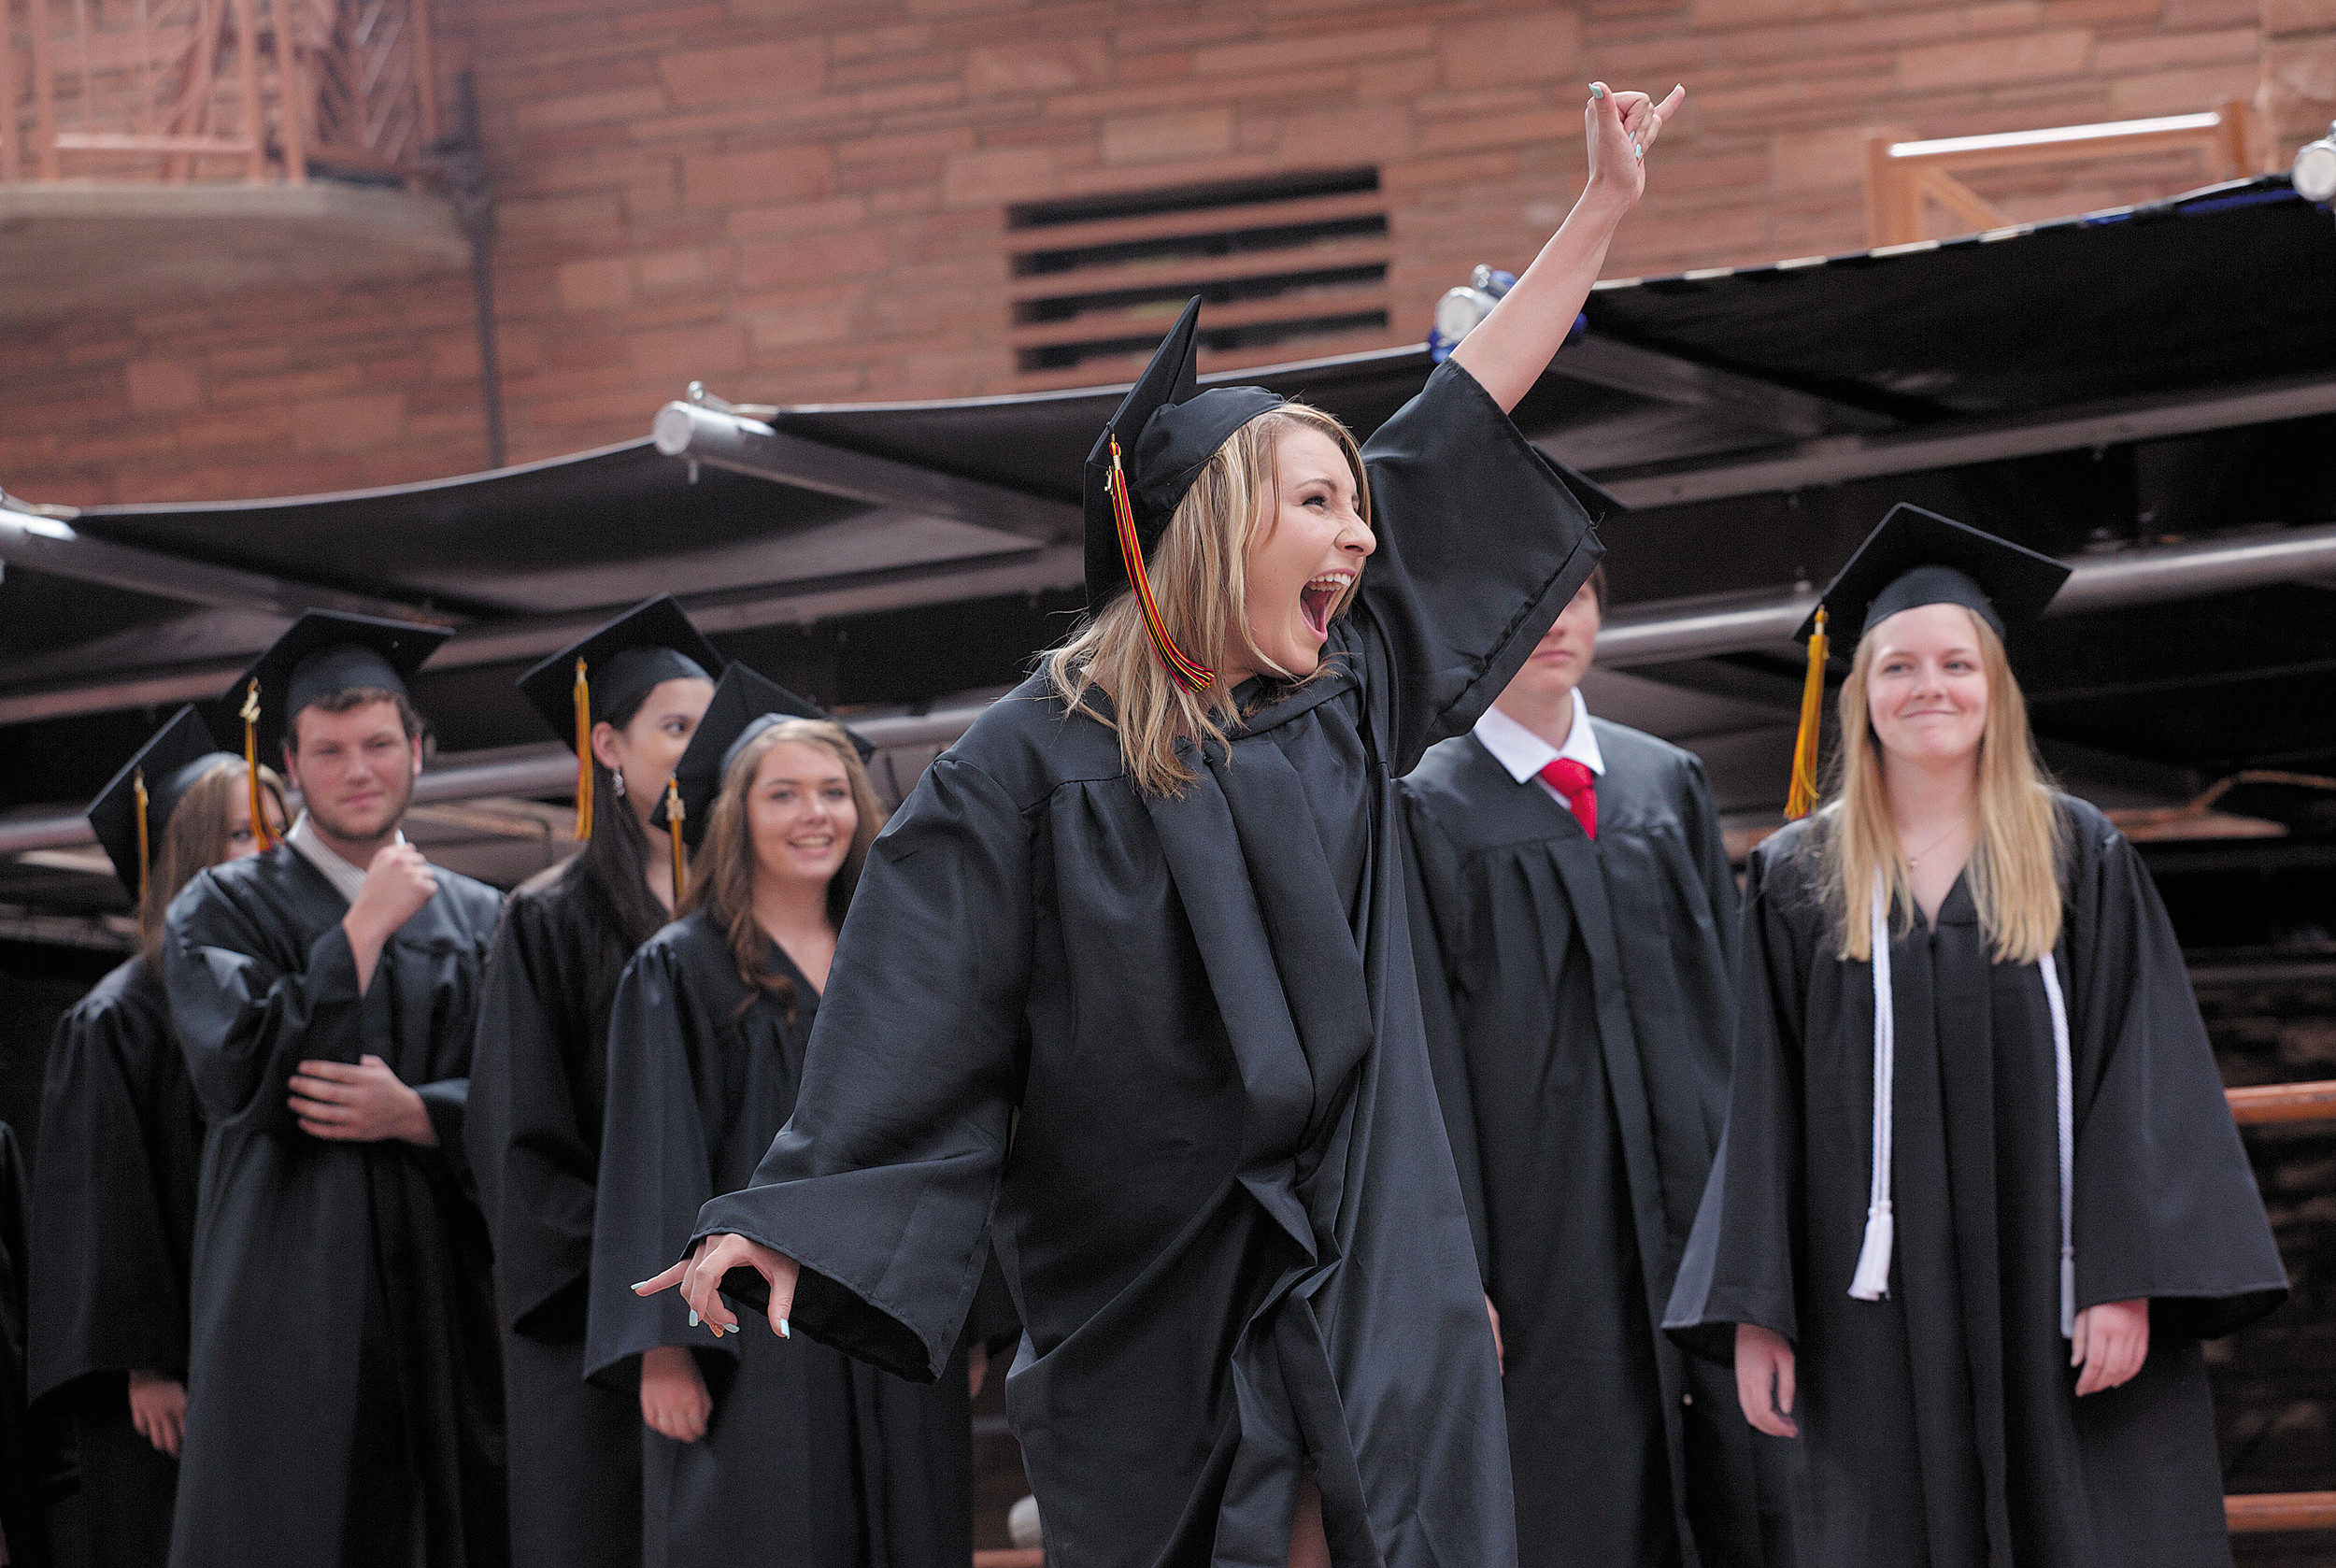 Hayley Carpenter waves in excitement at the crowd after her name is called during Castle View High School's graduation ceremony at Red Rocks Amphitheater on May 21.